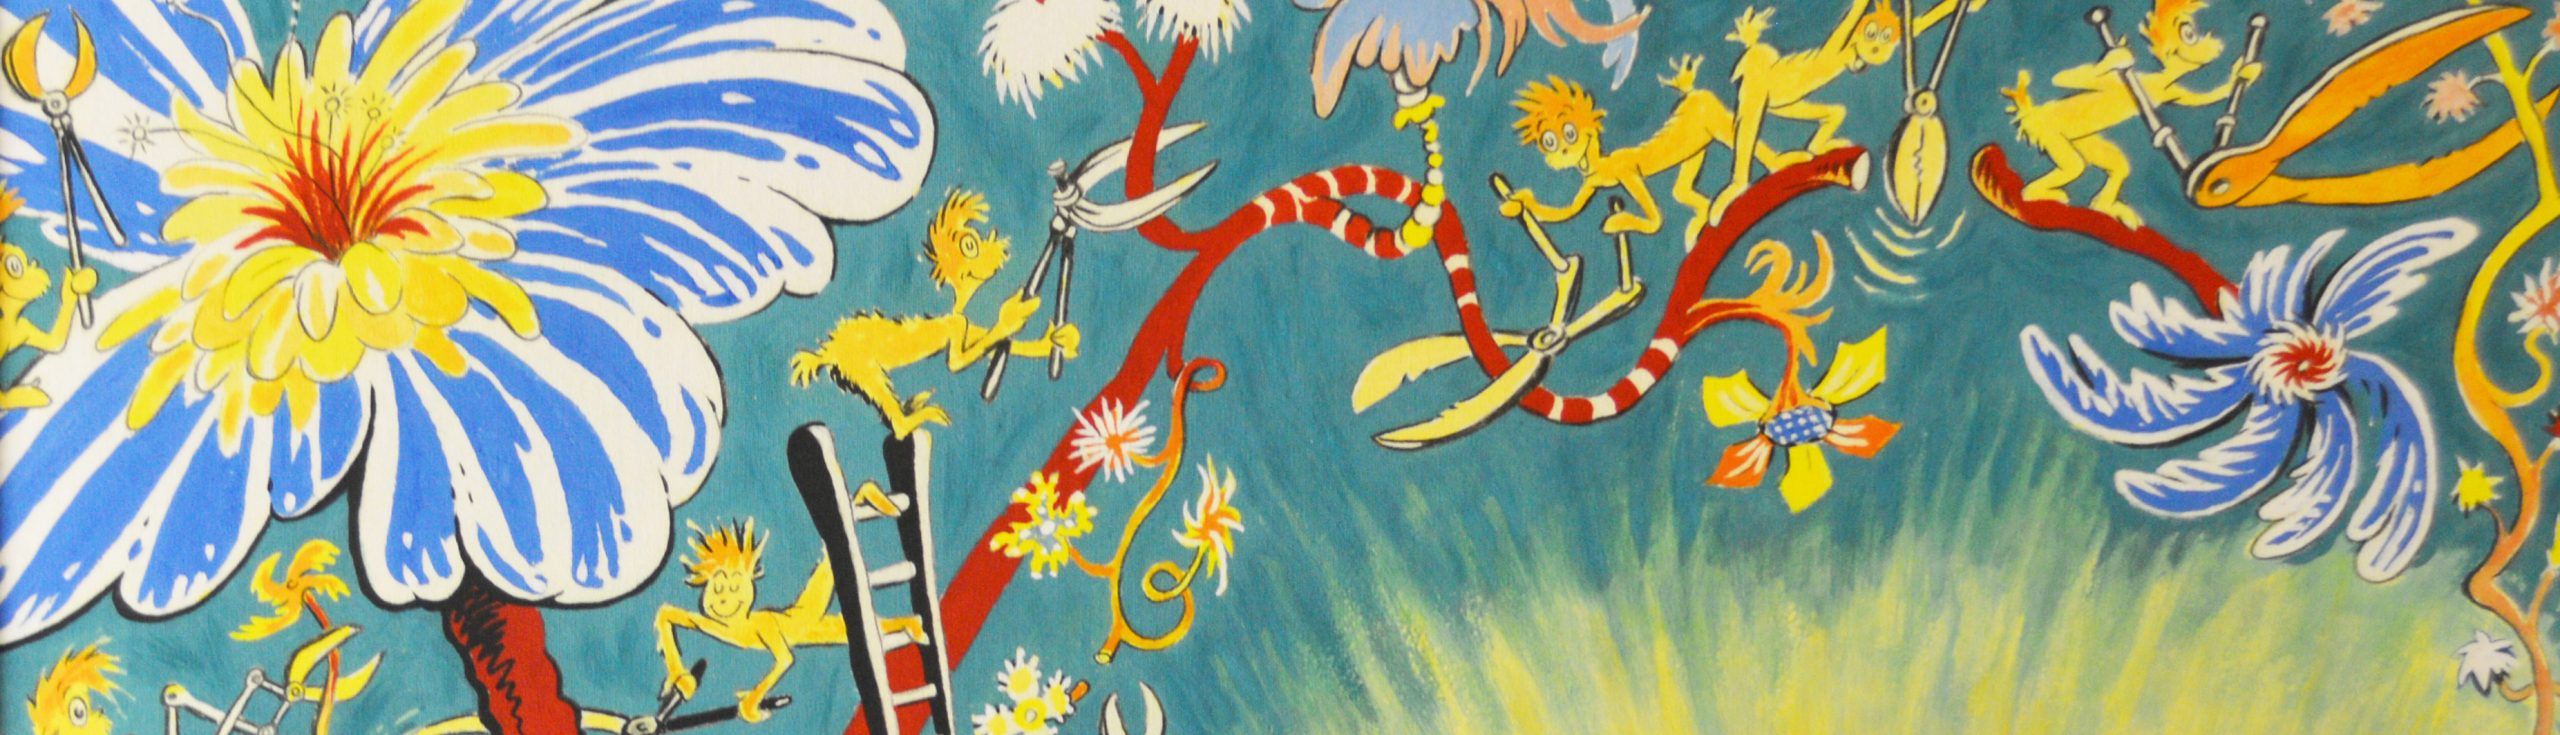 Unslumping: Insights From Dr. Seuss About Managing Change